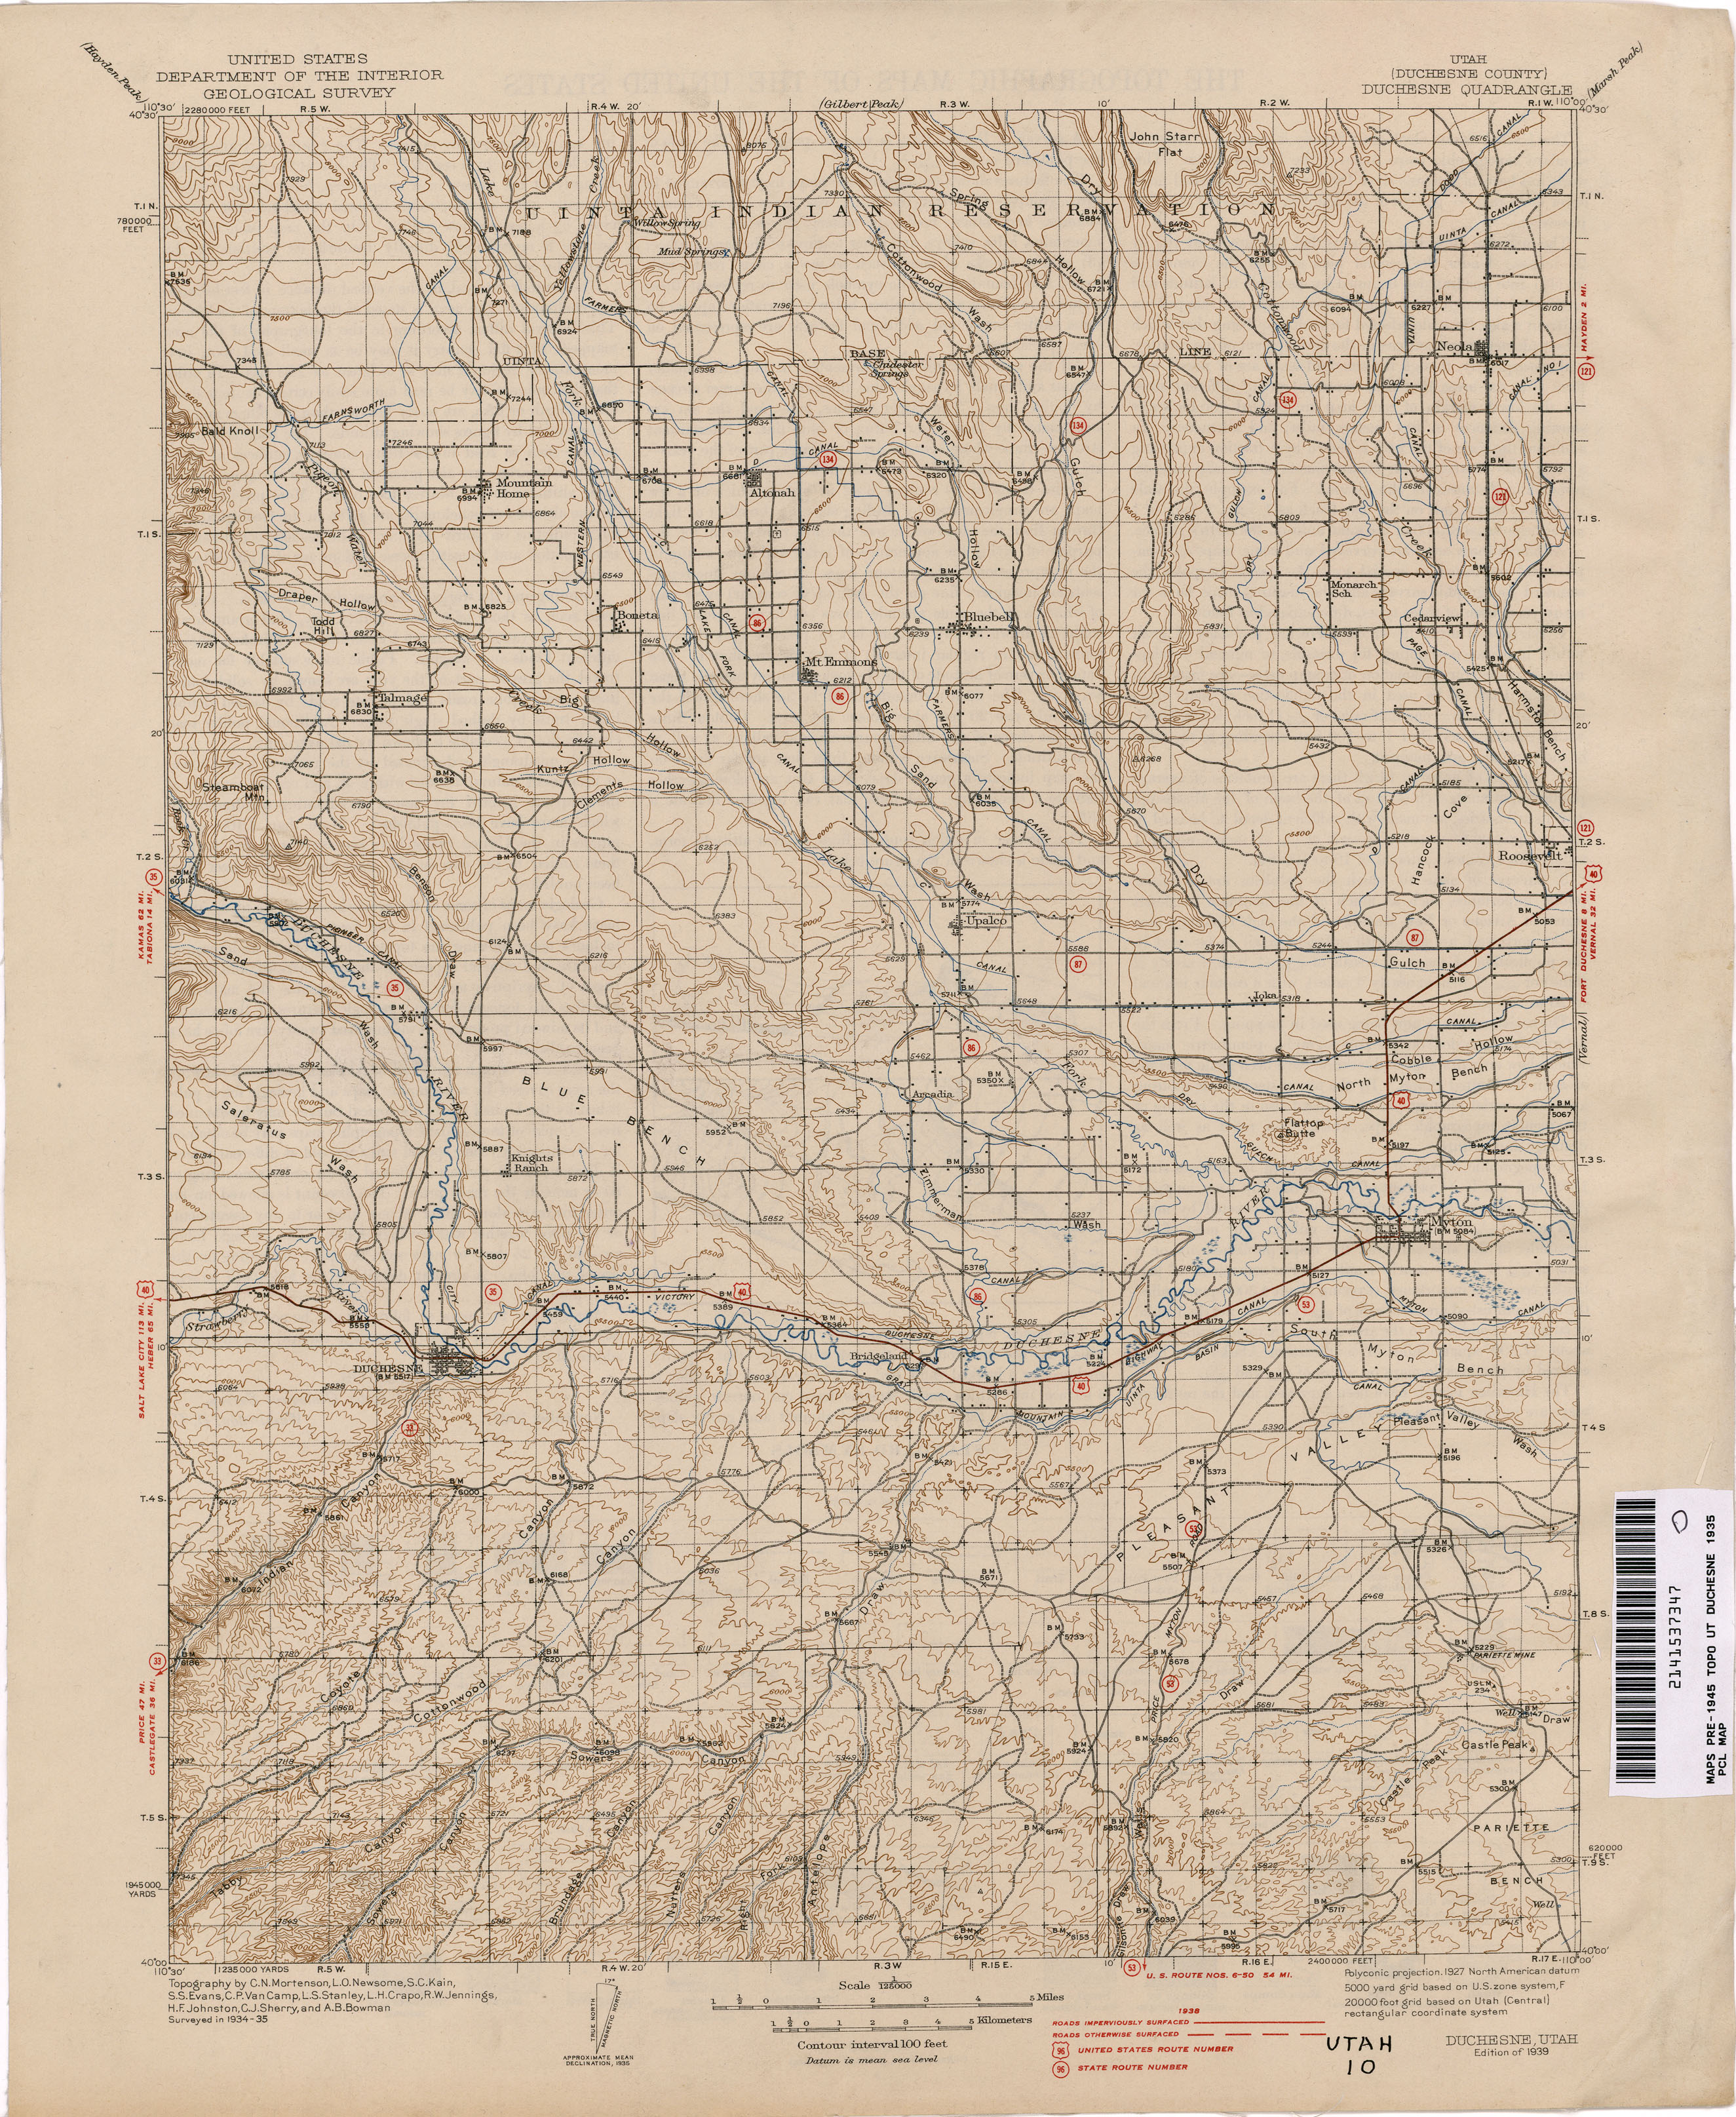 Utah Historical Topographic Maps - Perry-Castañeda Map Collection on